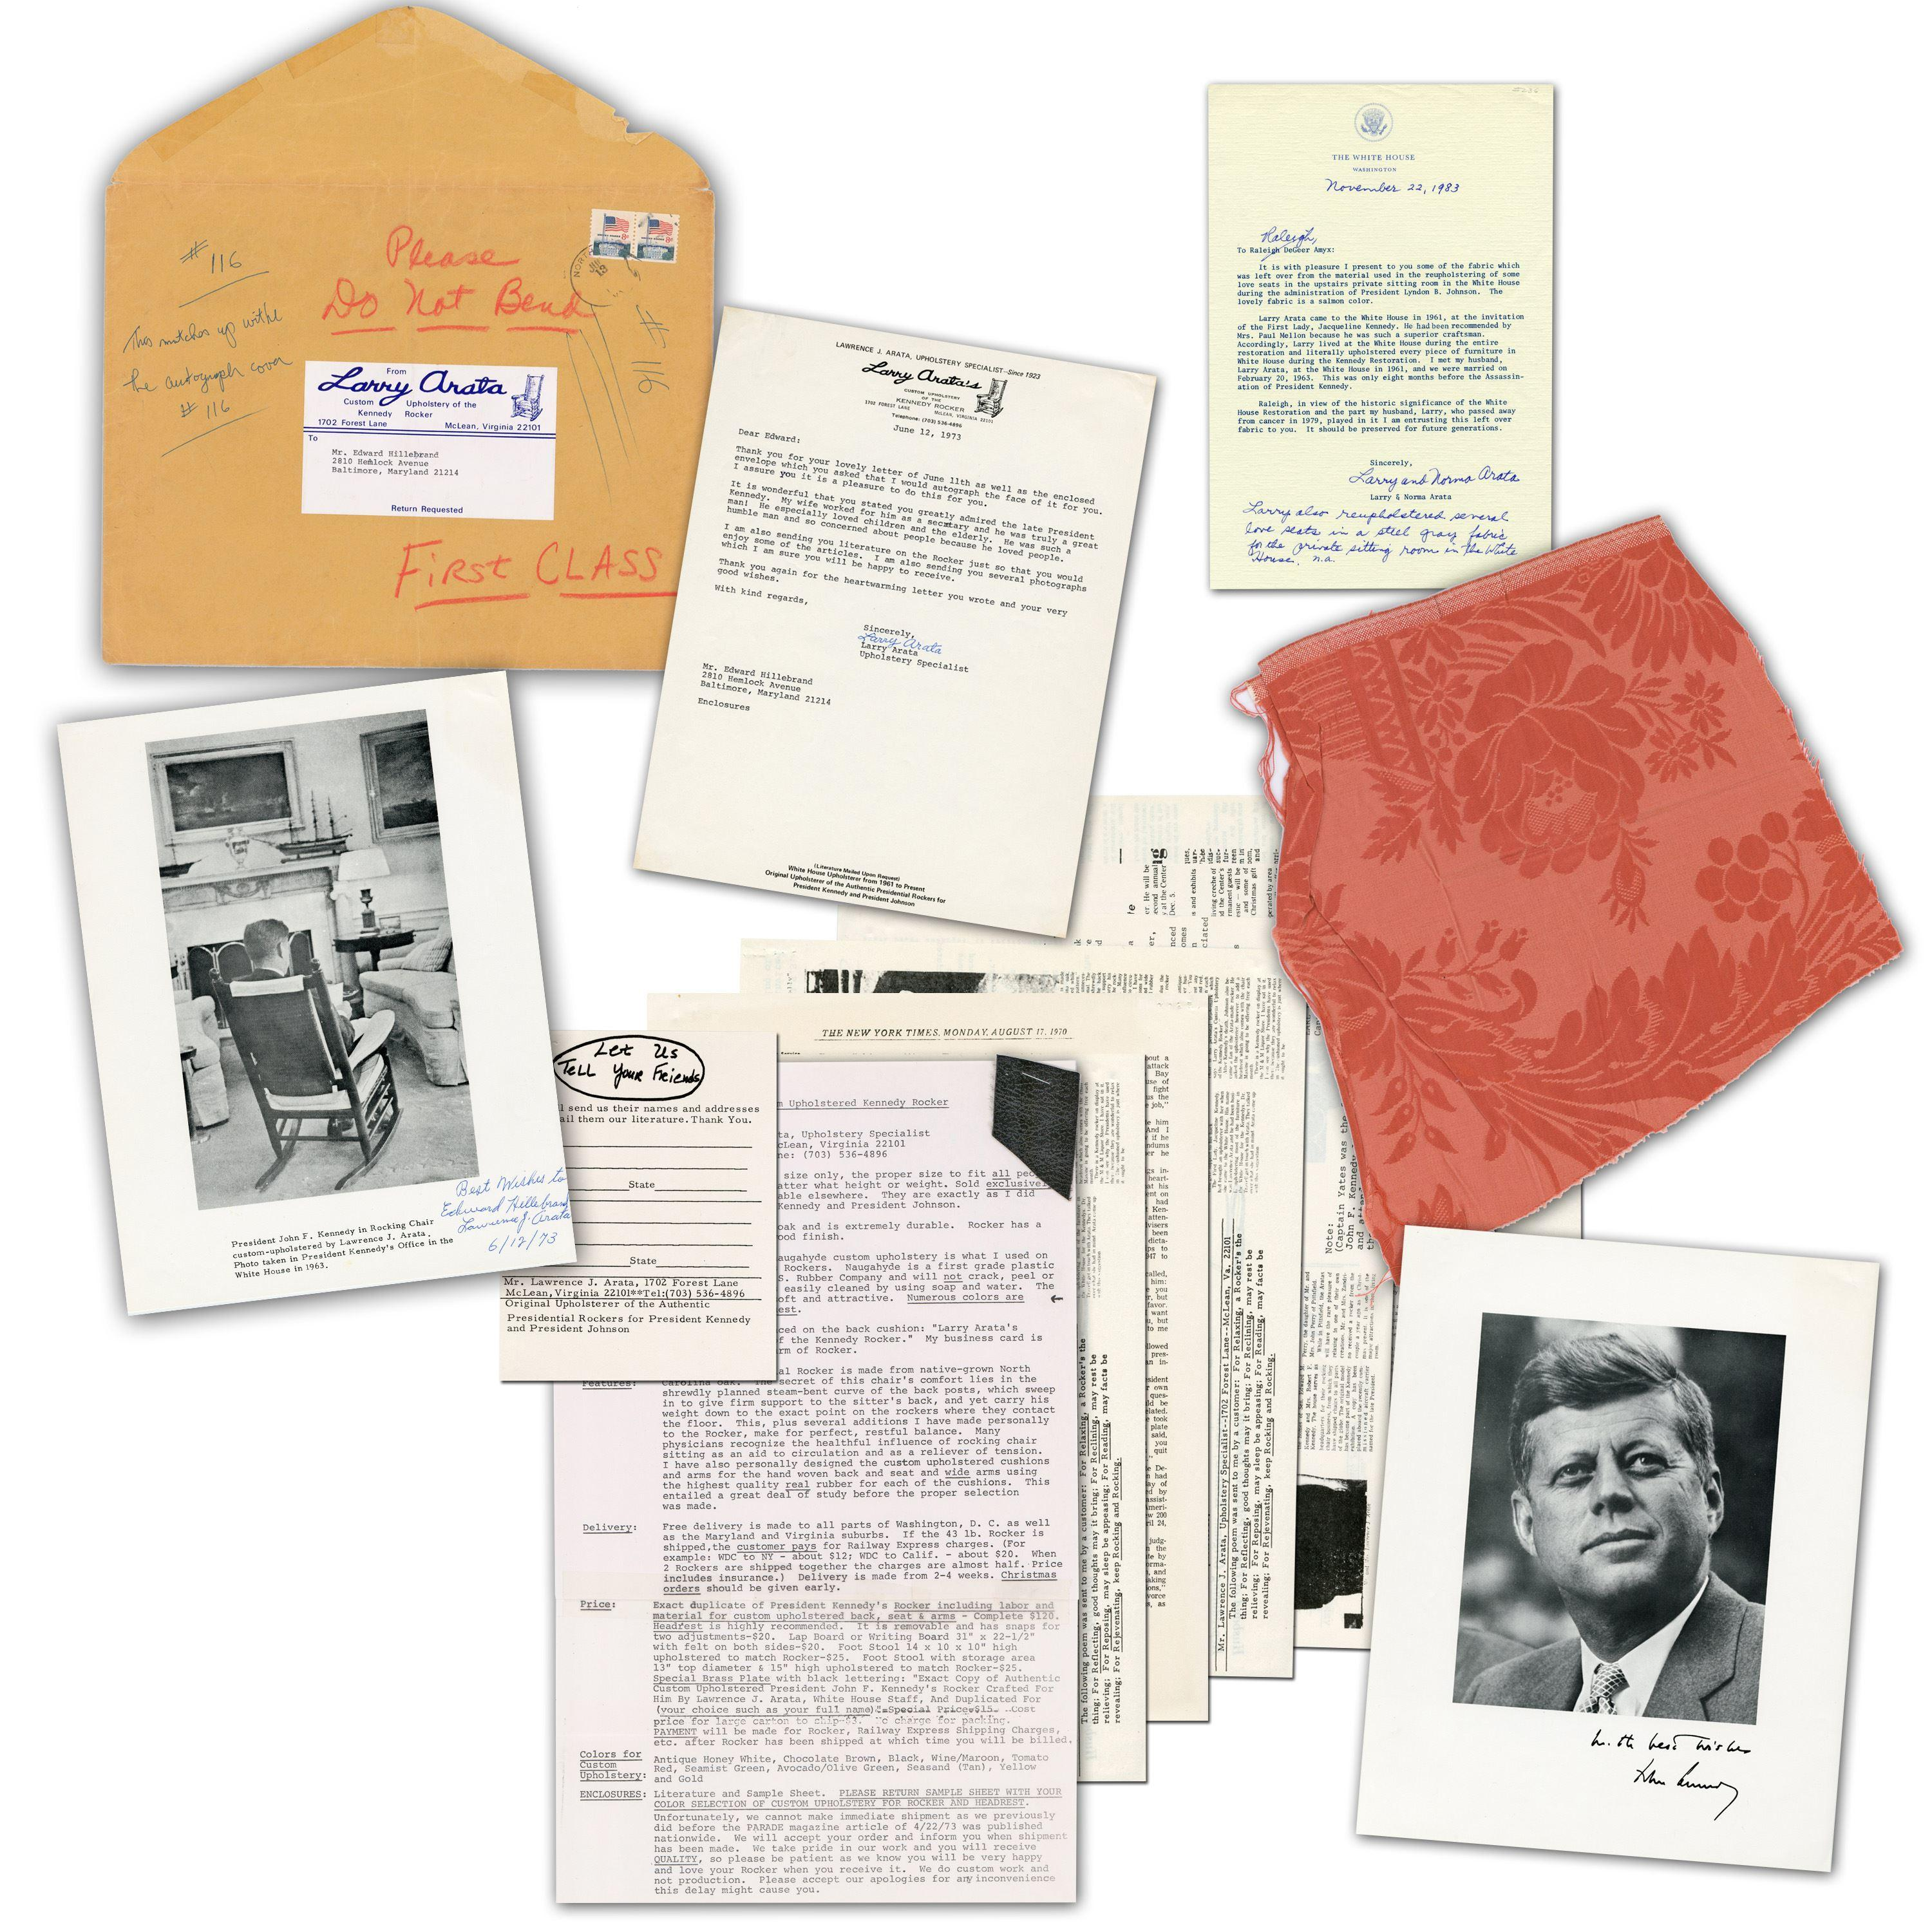 JFK & LBJ Related Fabric Incl. Rocking Chair Swatch & WH Sofa Upholstery Sample, with Exceptional Provenance!